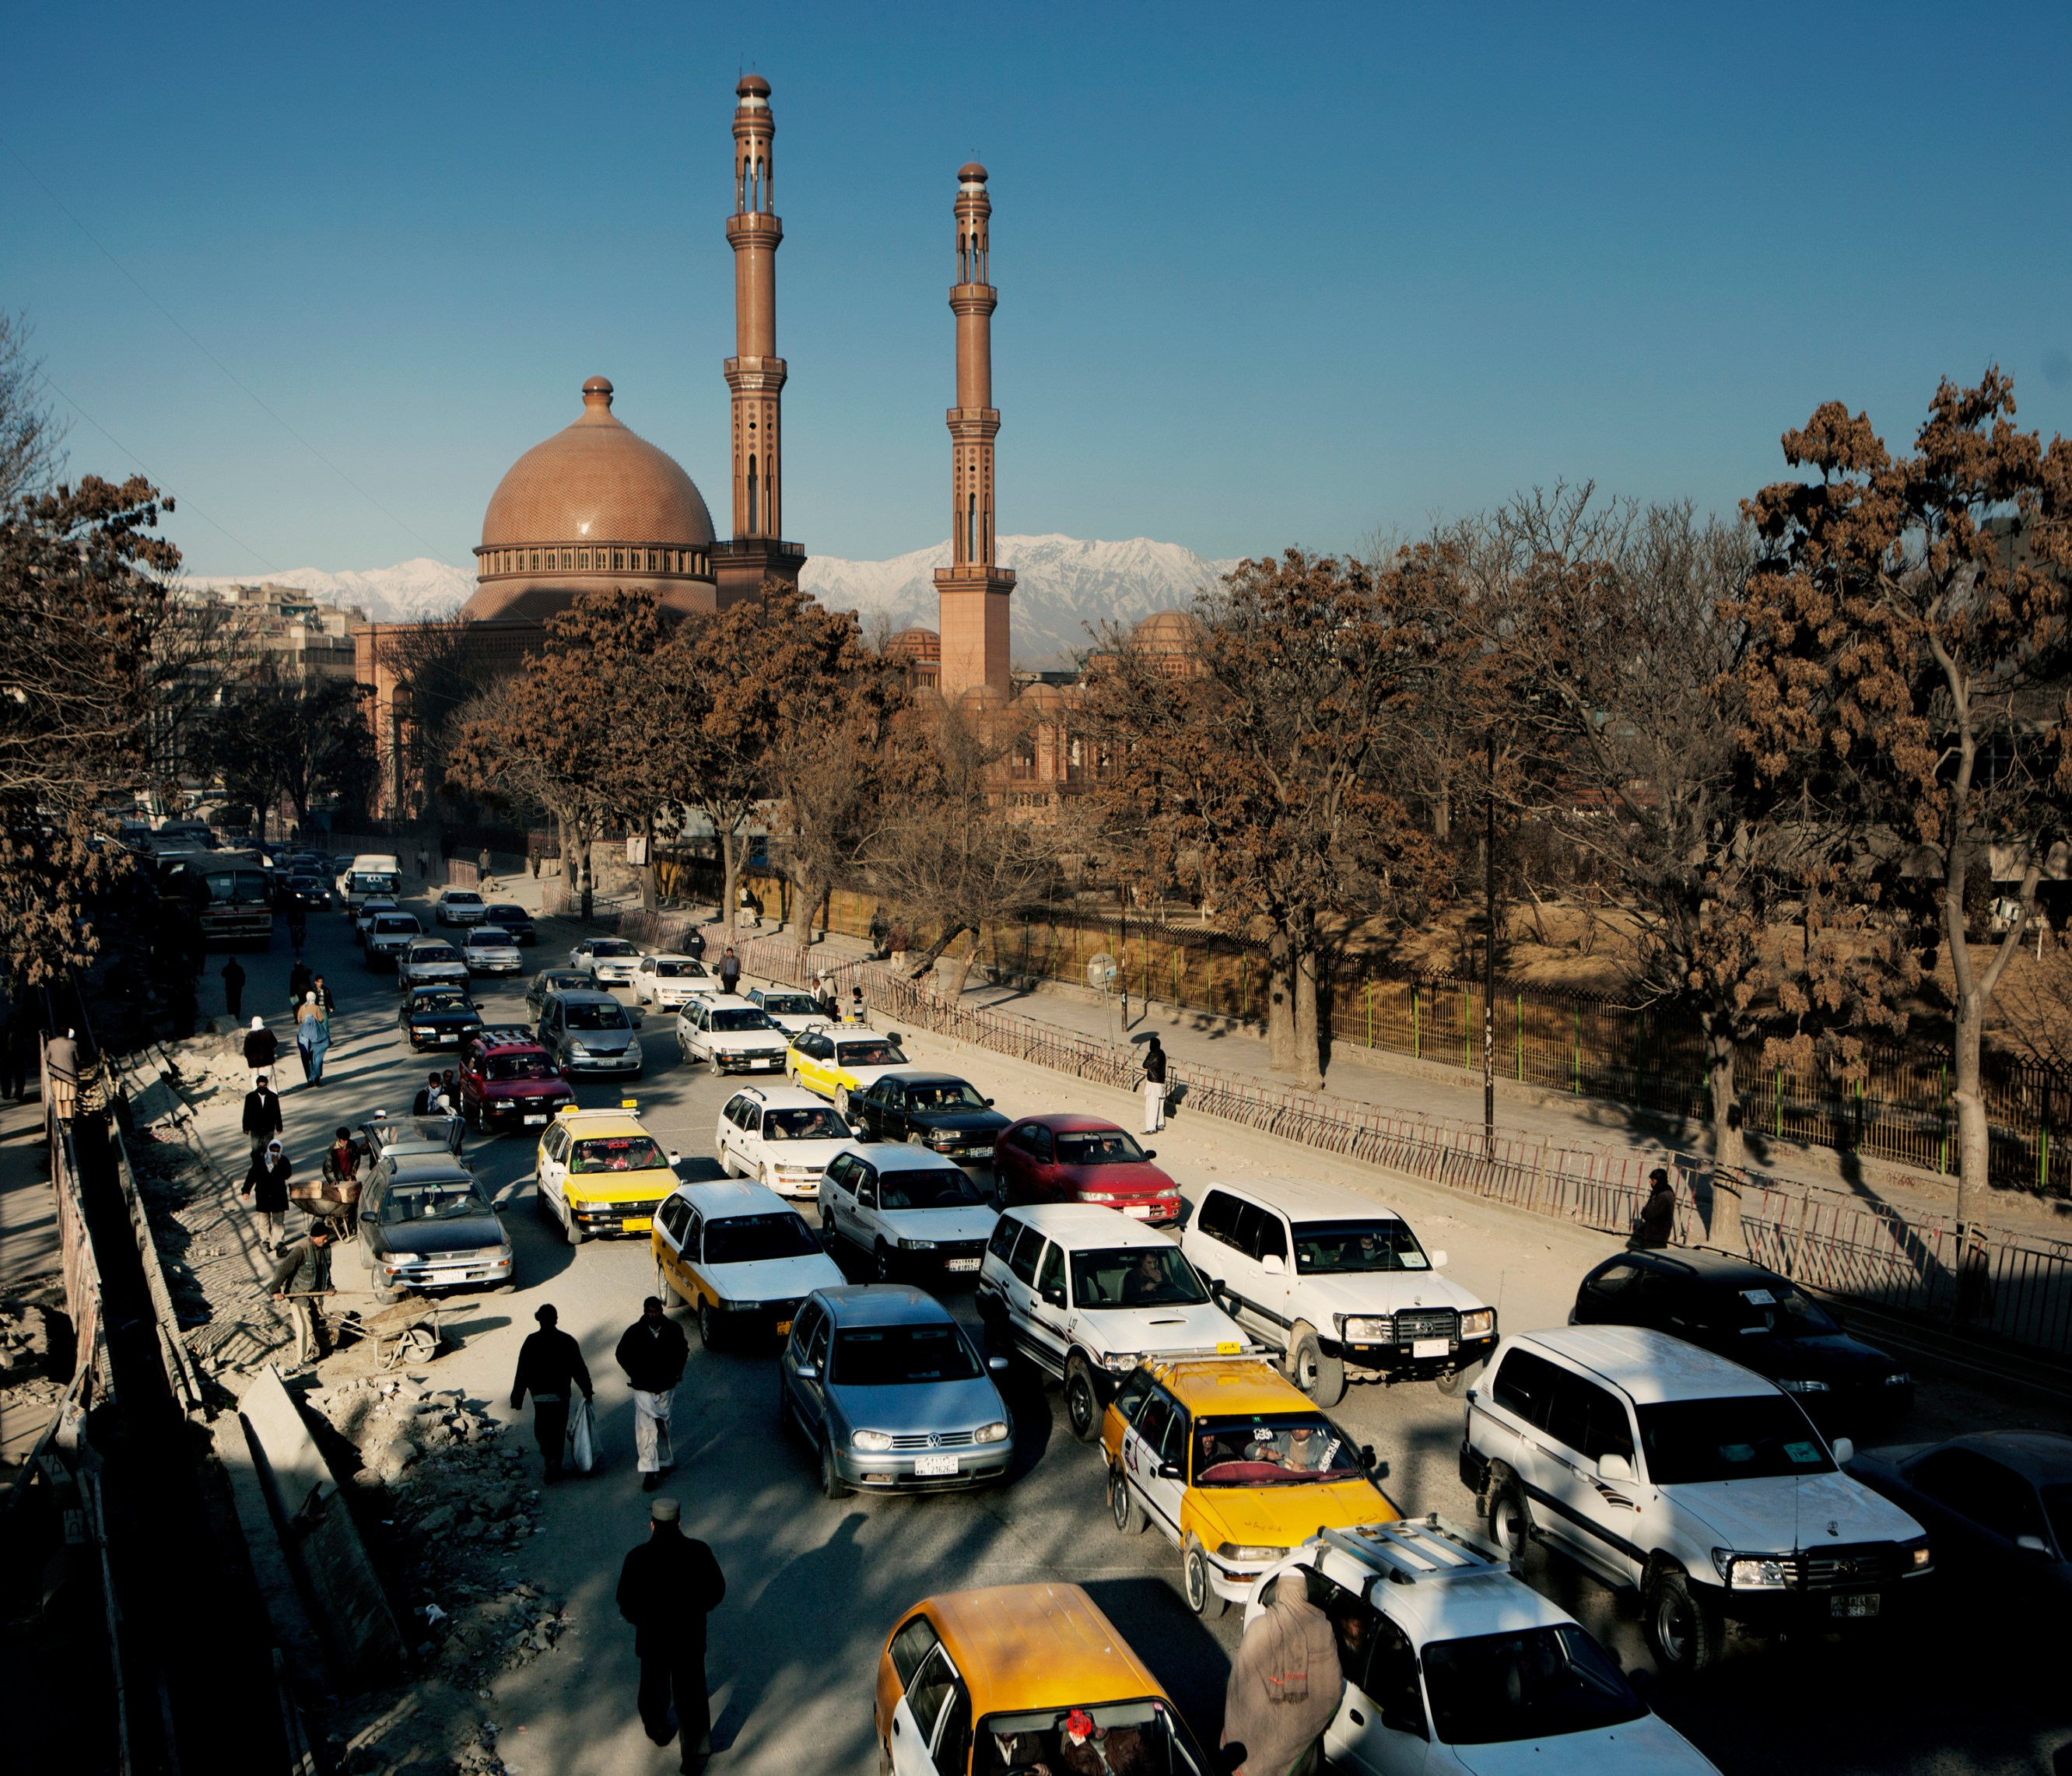 Heavy traffic in a street outside the Abdul Rahman Mosque. In June 2011, President Obama announced his plan to begin the withdrawal of US troops from Afghanistan, but there is currently no end date for the war in the troubled country. Helmand is the largest province in Afghanistan, and the heart of the war against terror. Commanders on the ground have described the situation as the most brutal conflict the British Army has been involved in since the Korean War. Much of the fighting between NATO and Taliban forces is taking place in this province and Helmand is a true Taliban stronghold. The Helmand River flows through the mainly desert region. With these images I am trying to show a softer side to this troubled area of Afghanistan.